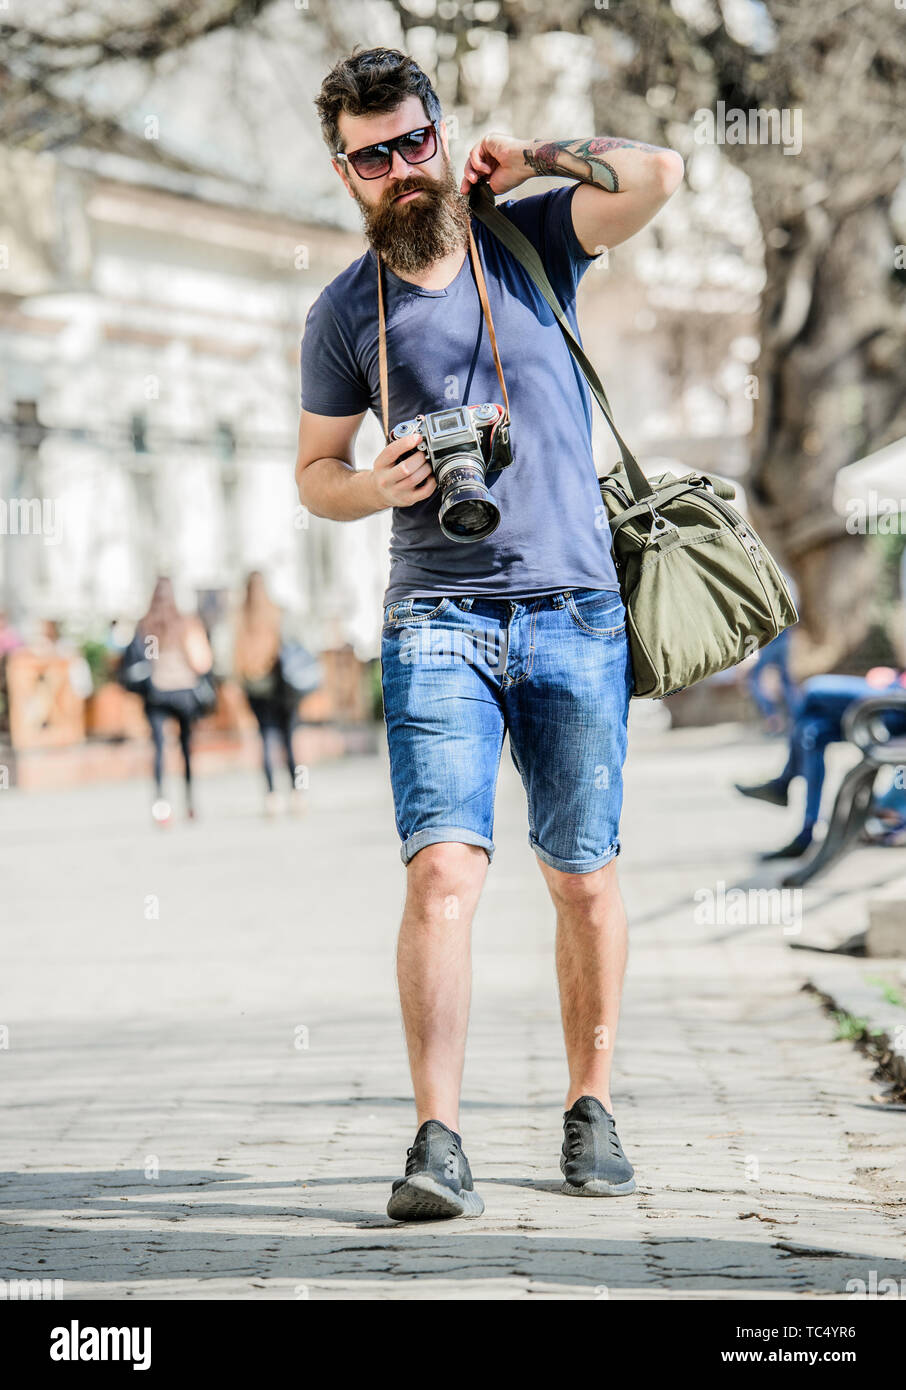 Manual settings. Photographer with beard and mustache. Tourist shooting photos. Content creator. Man bearded hipster photographer. Old but still good. Photographer hold vintage camera. Modern blogger. - Stock Image